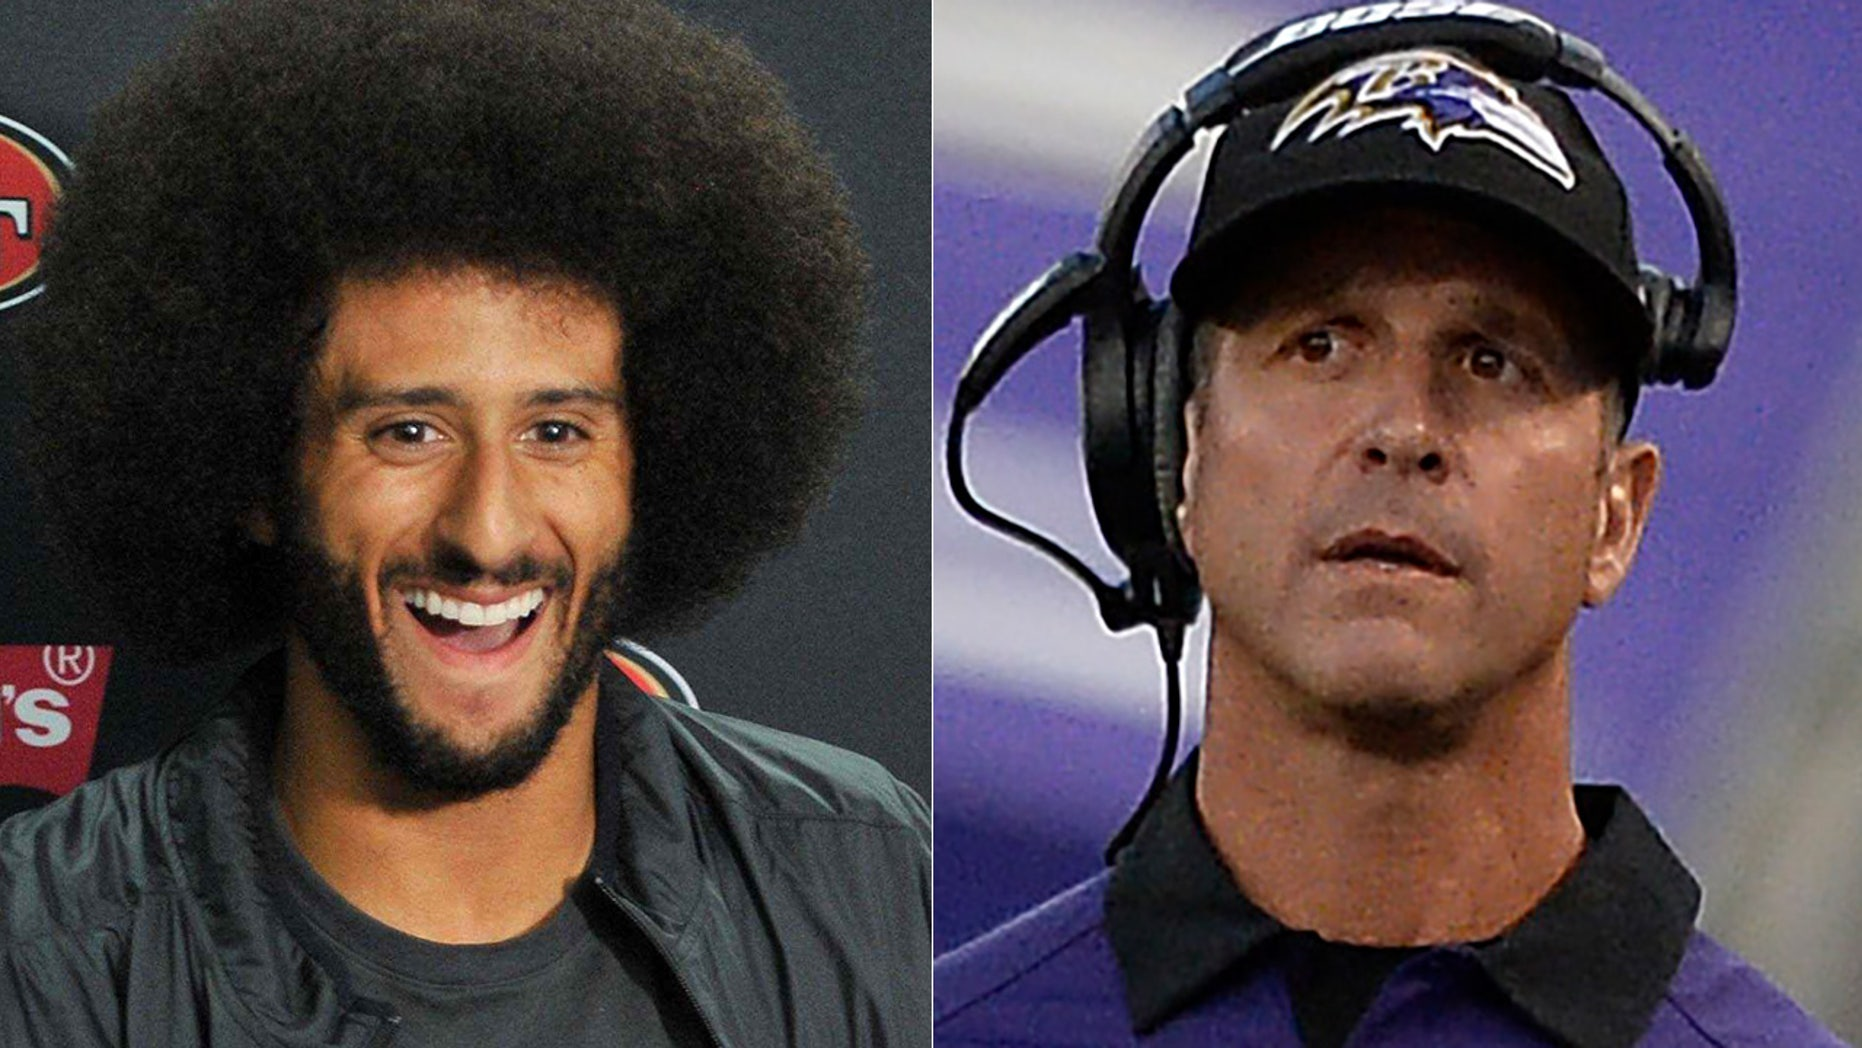 Colin Kaepernick's grievance case is reportedly targeting Ravens coach John Harbaugh and GM Ozzie Newsome.